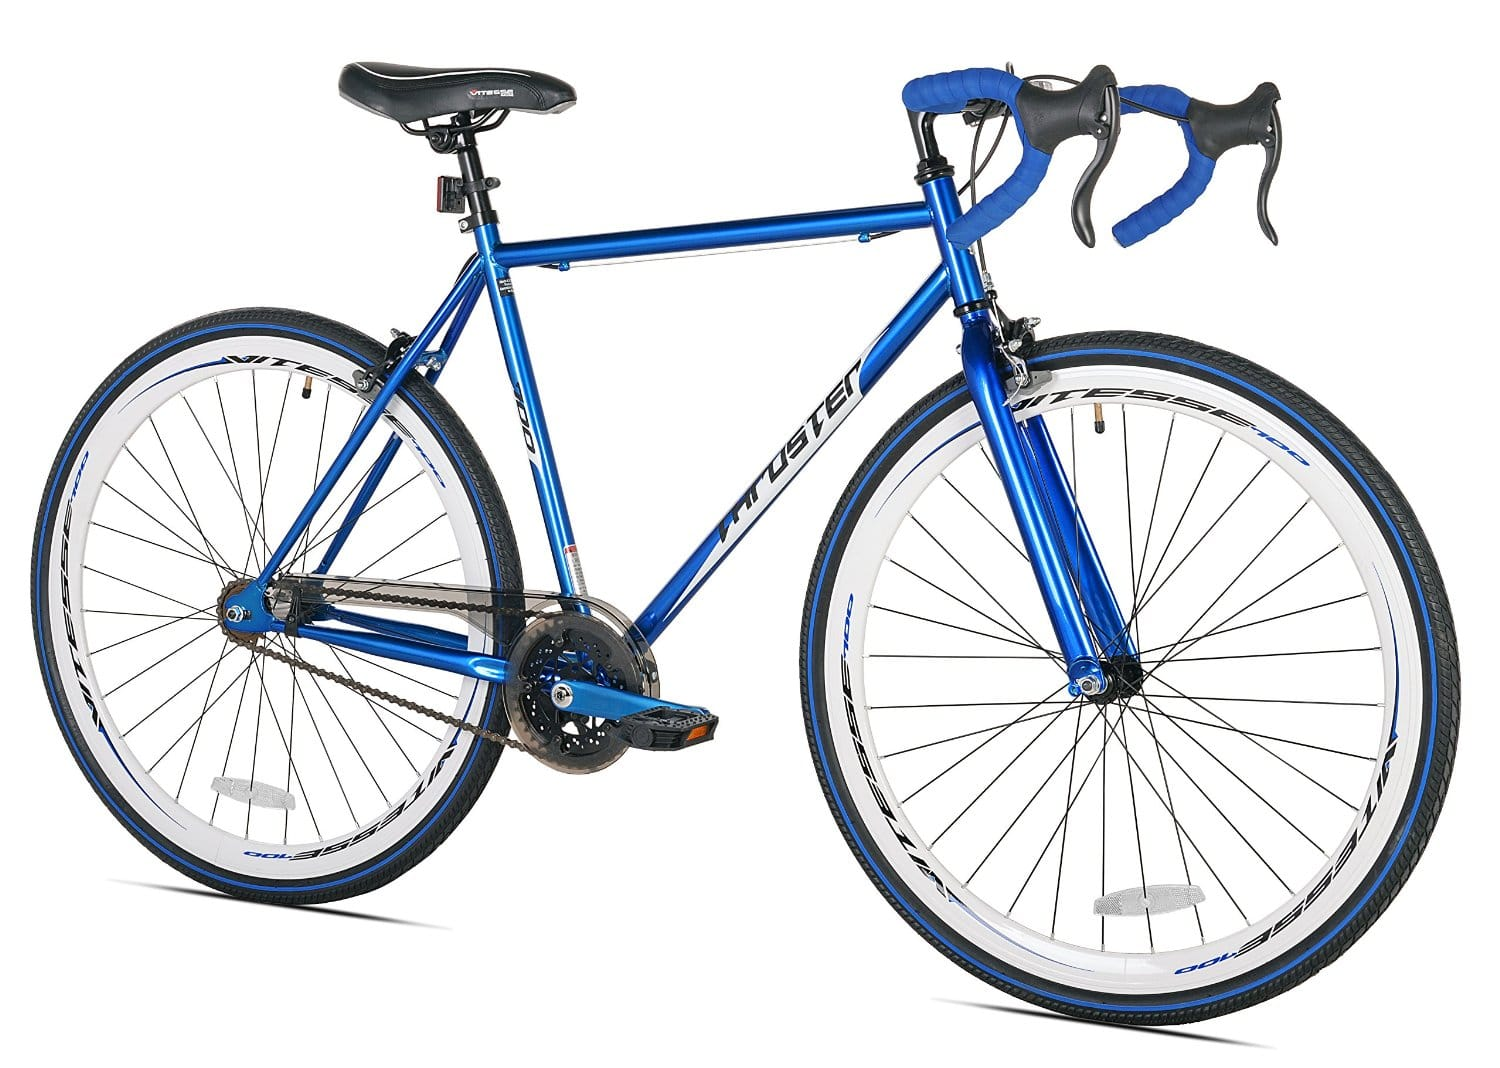 Top 10 Best Fixed Gear Bikes In 2016 Reviews